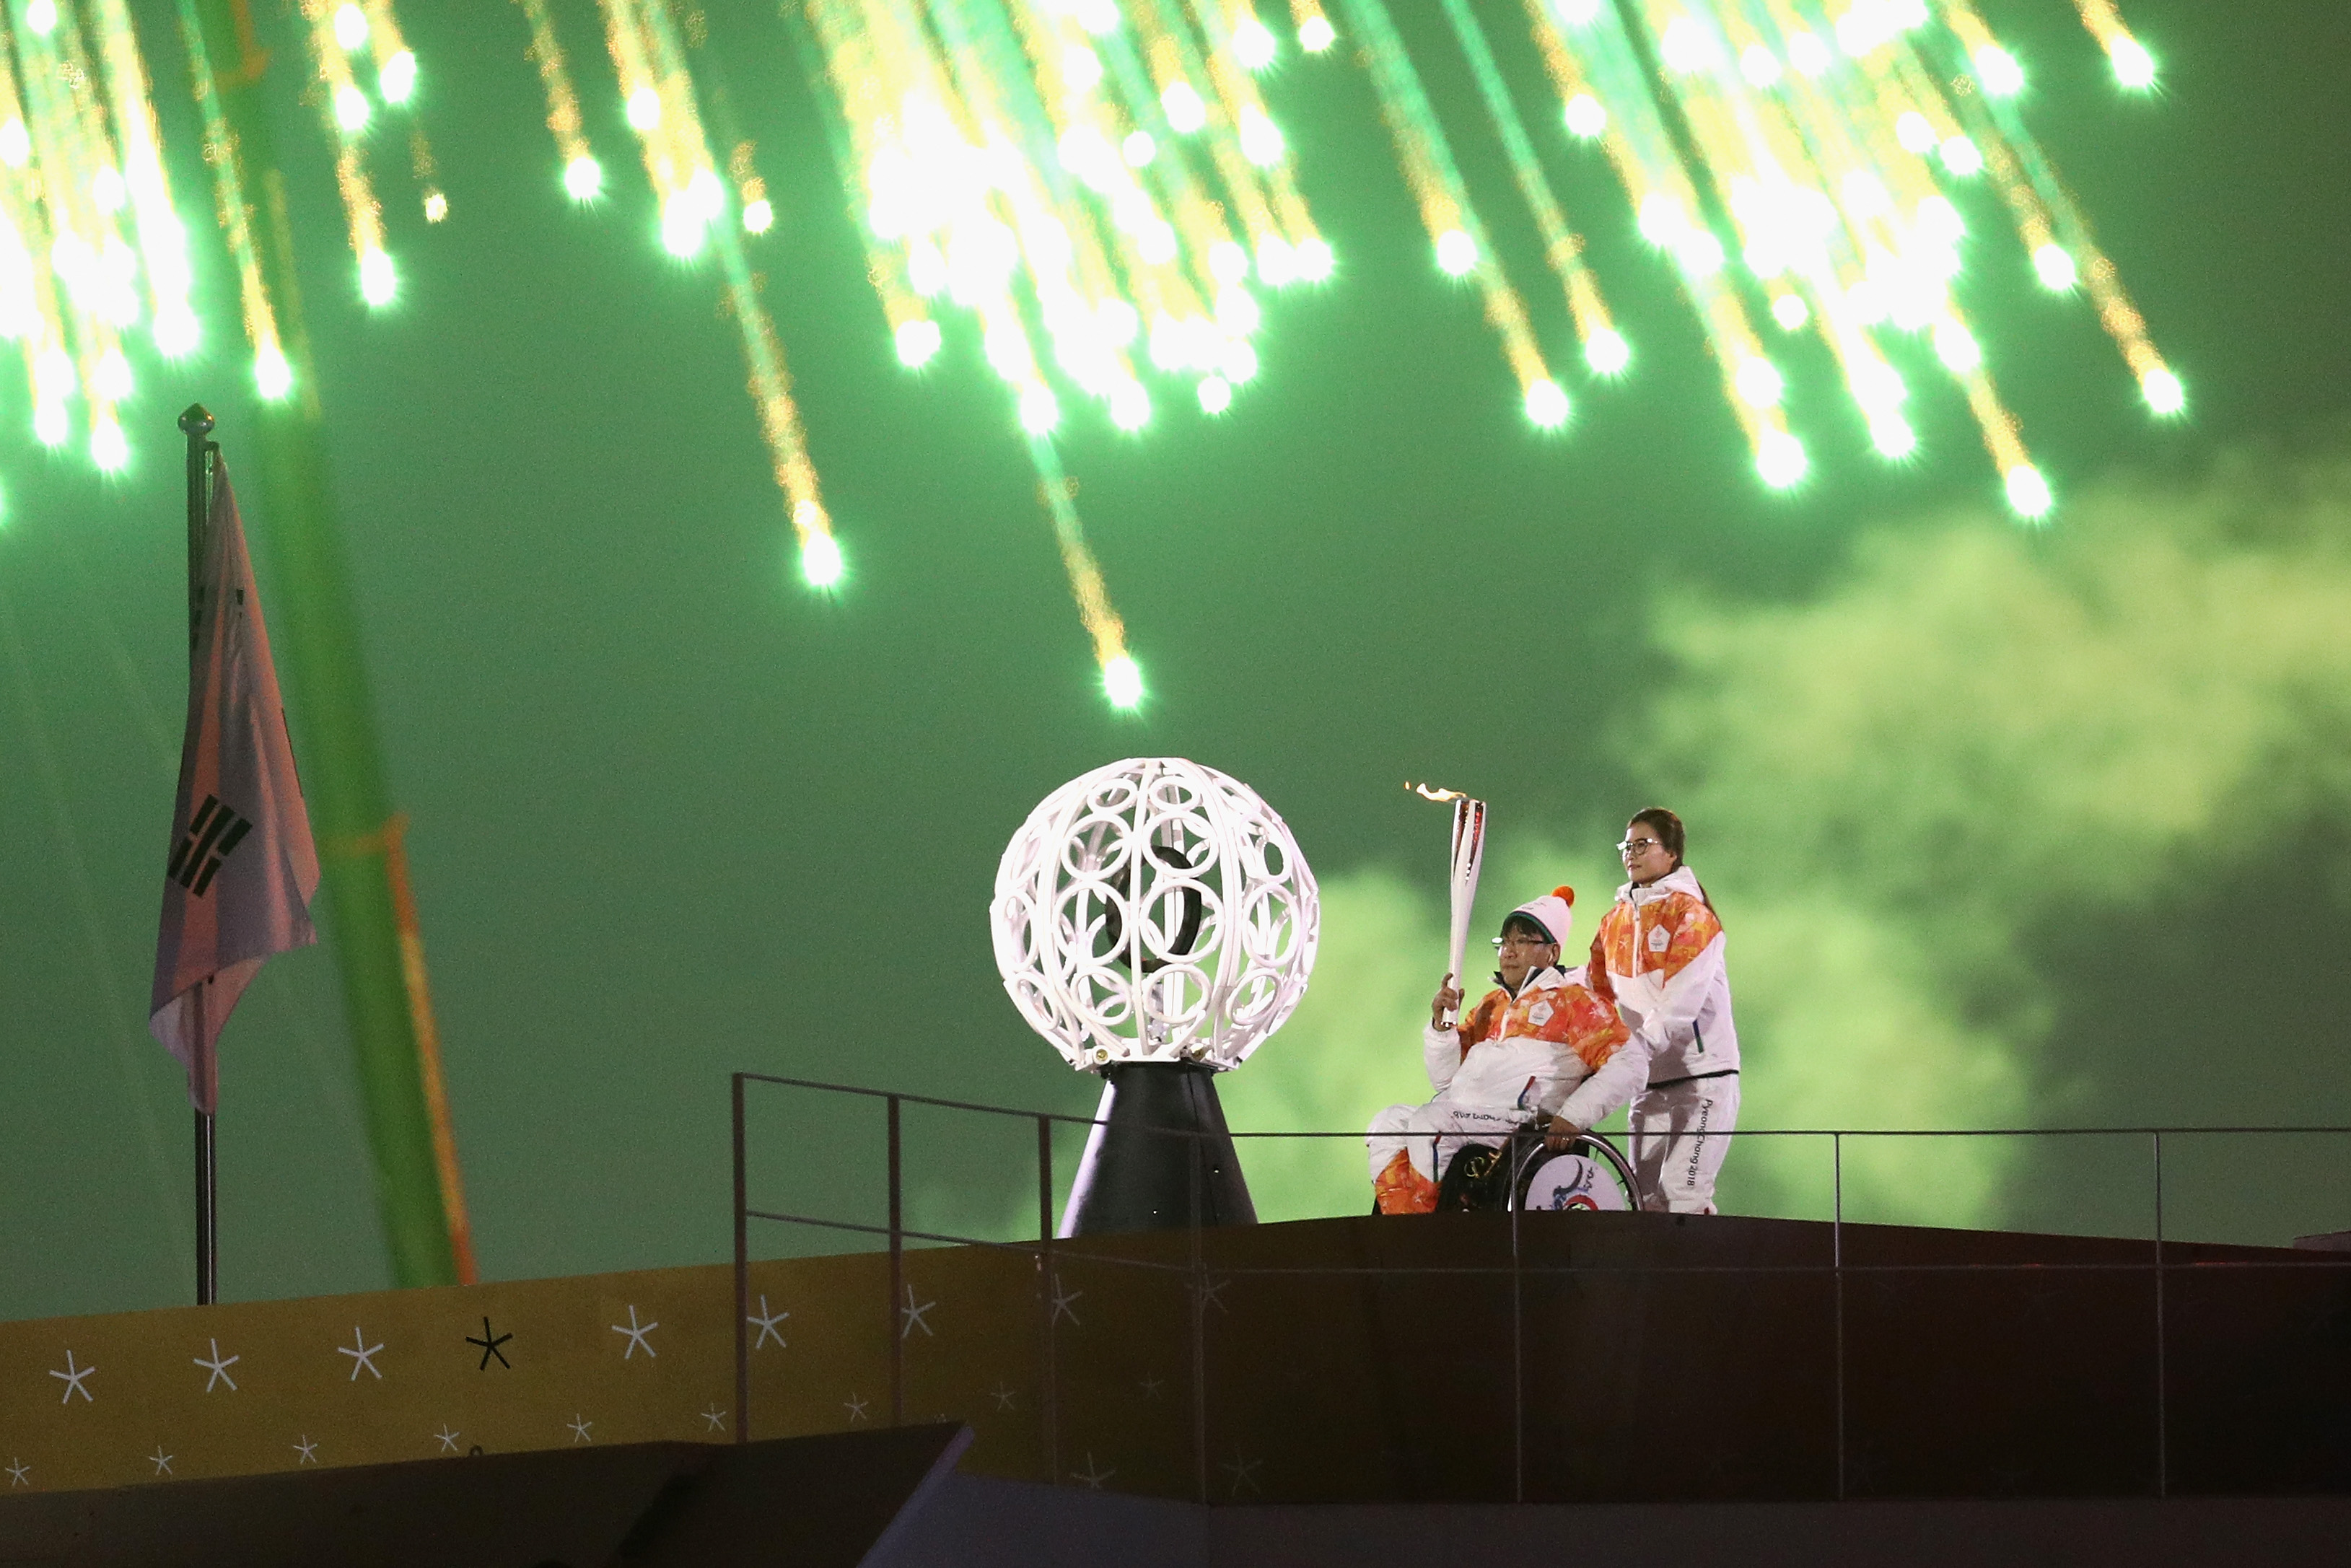 Seo Soonseok and Kim EunJung carries the torch during the opening ceremony of the PyeongChang 2018 Paralympic Games at the PyeongChang Olympic Stadium on March 9, 2018 in Pyeongchang-gun, South Korea.